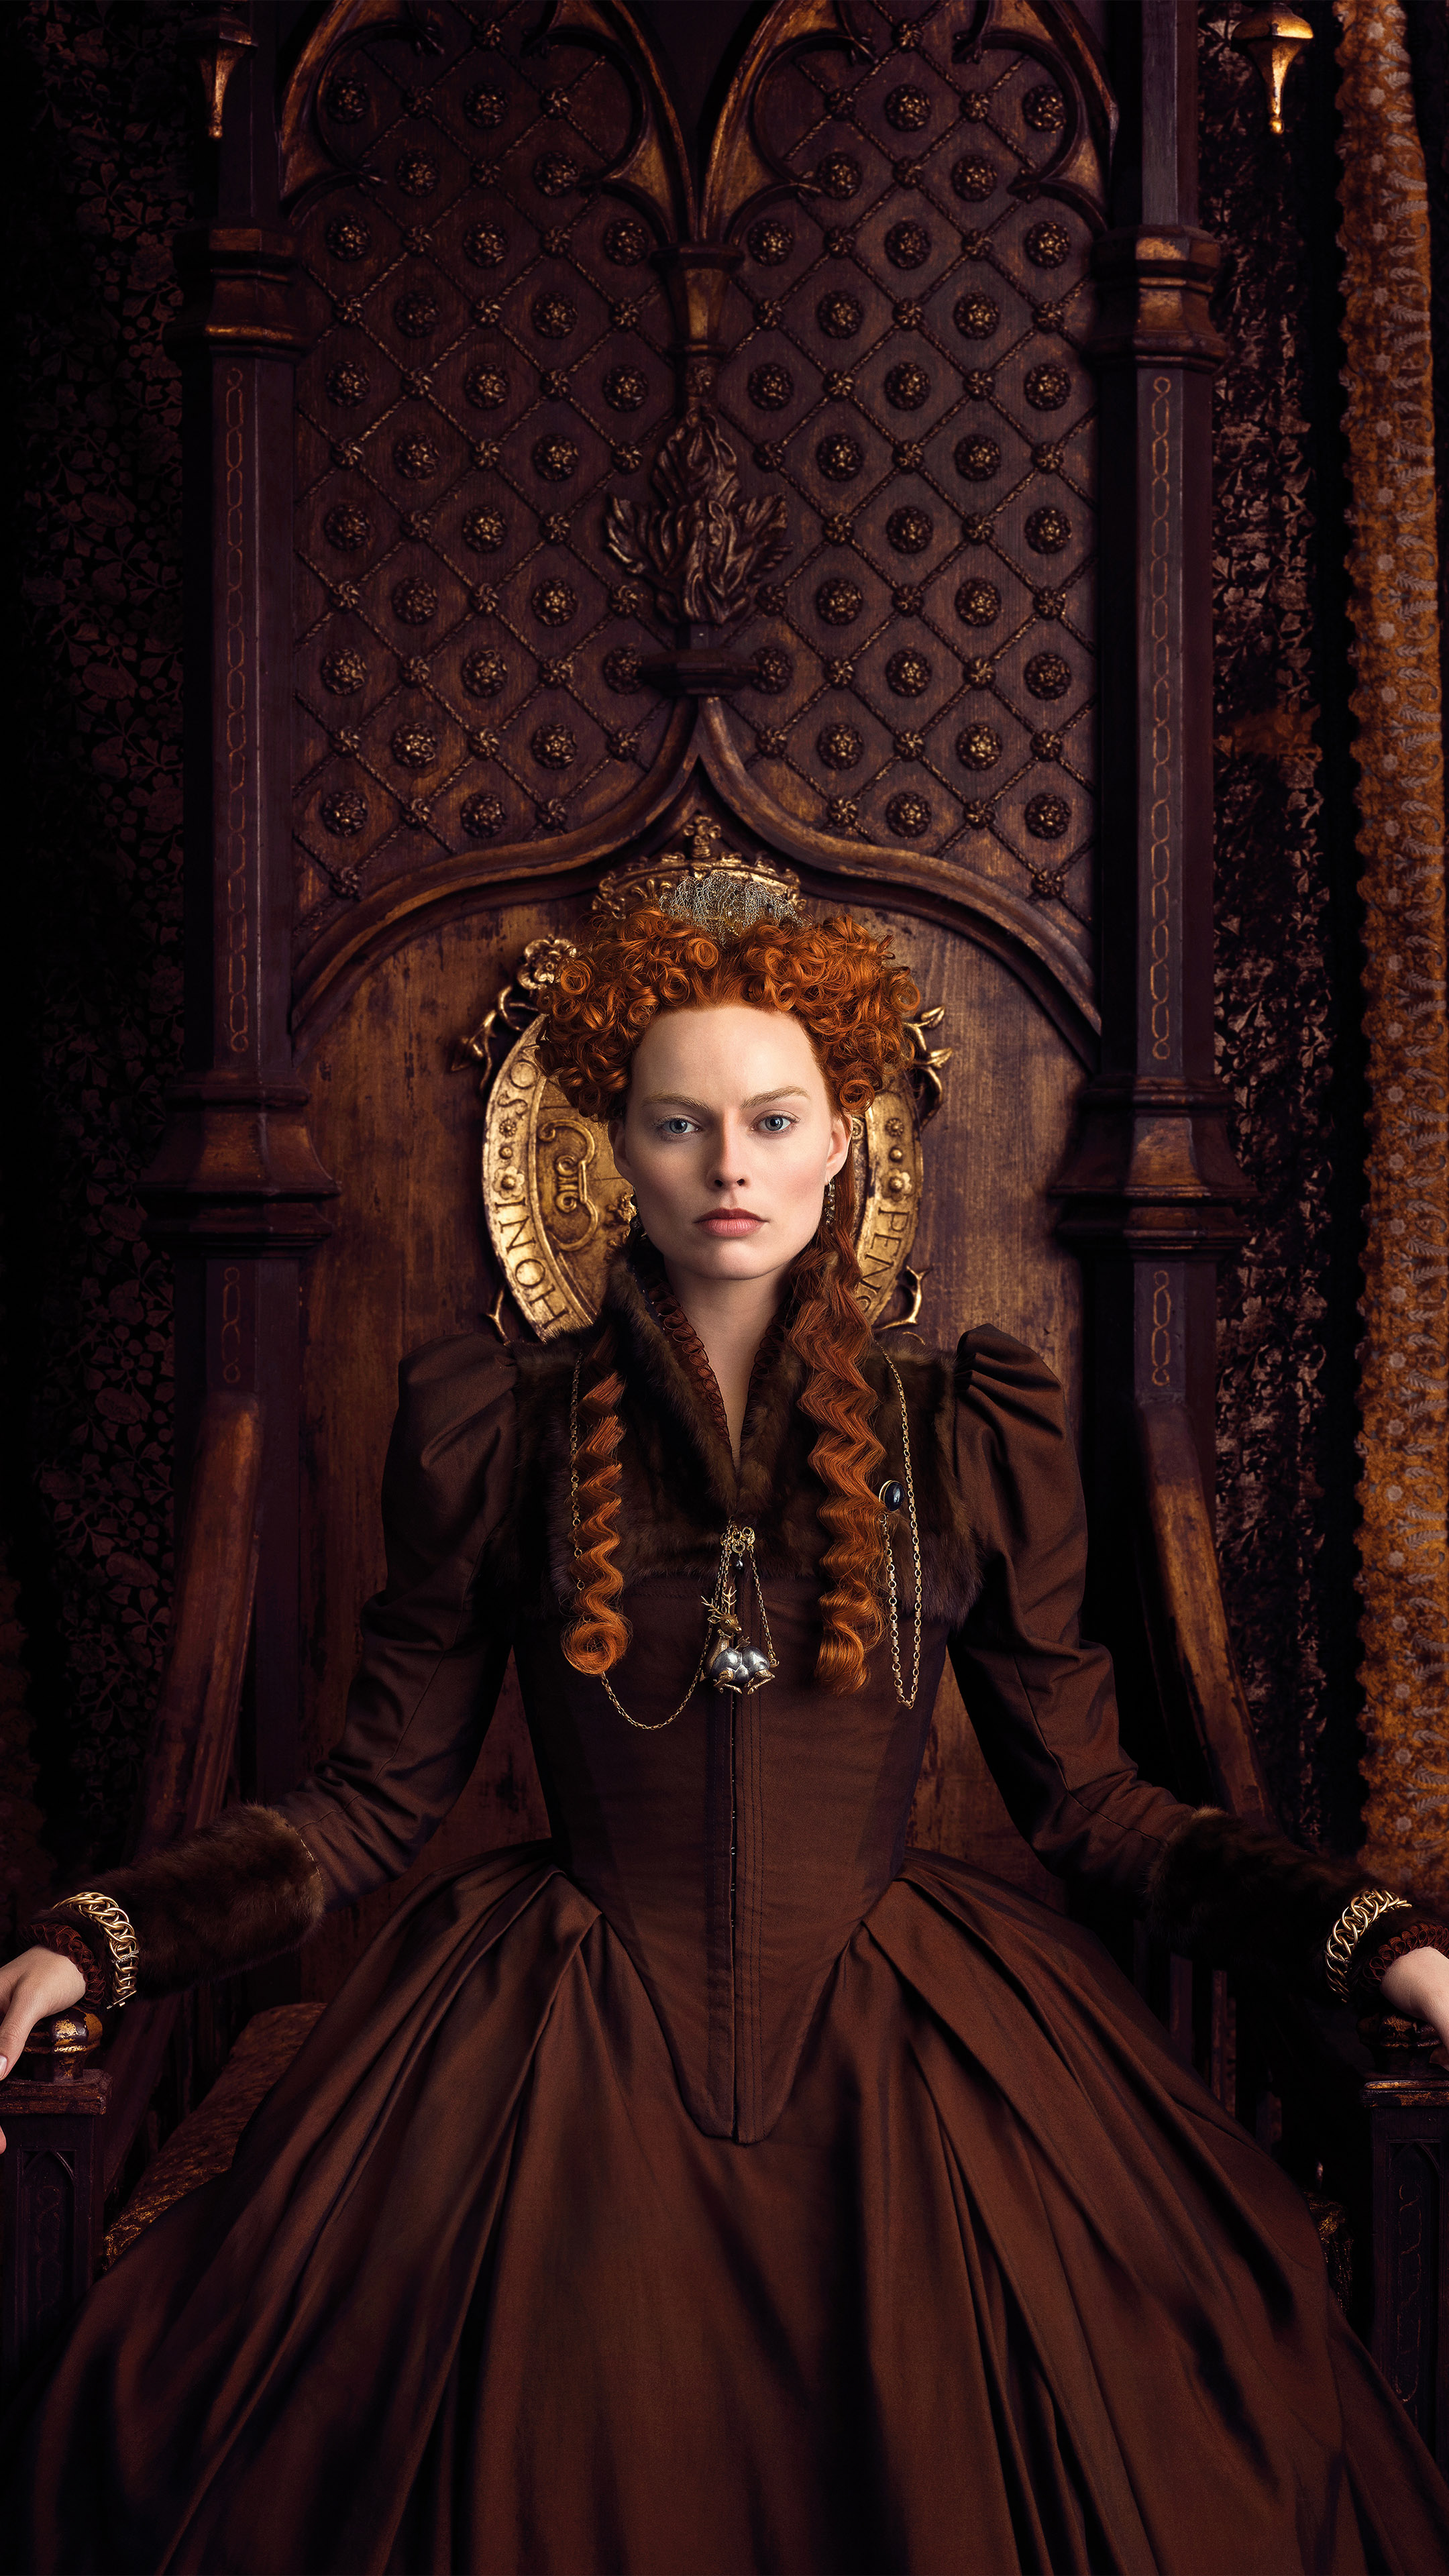 Whatsapp Car Wallpaper Download Download Margot Robbie In Mary Queen Of Scots Free Pure 4k